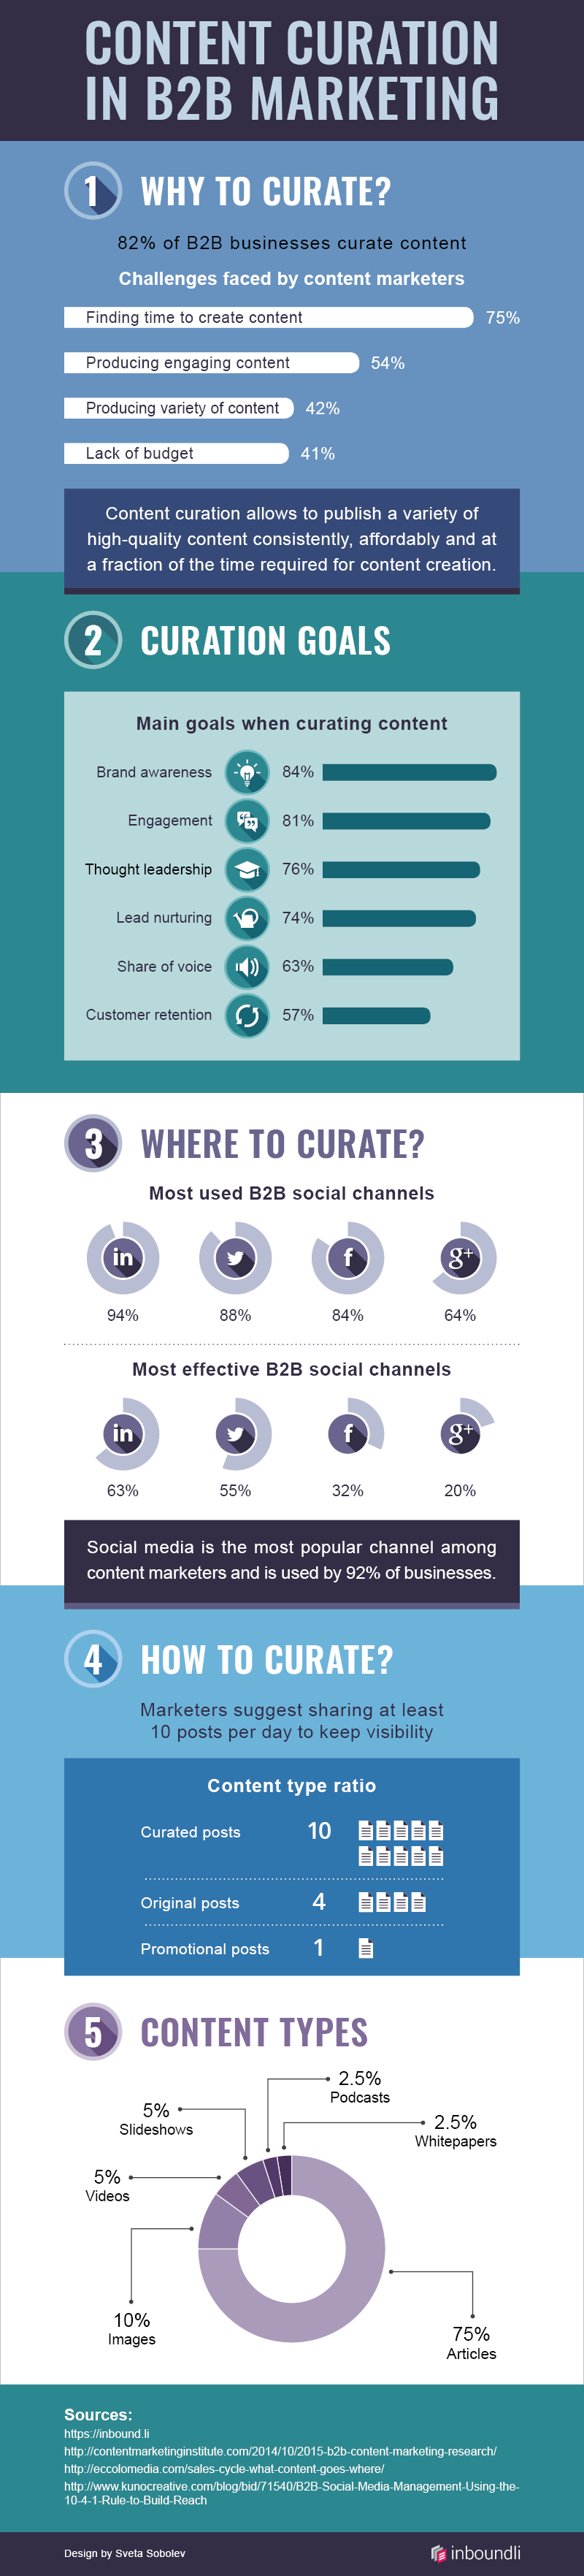 Content Curation in B2B Marketing #infographic